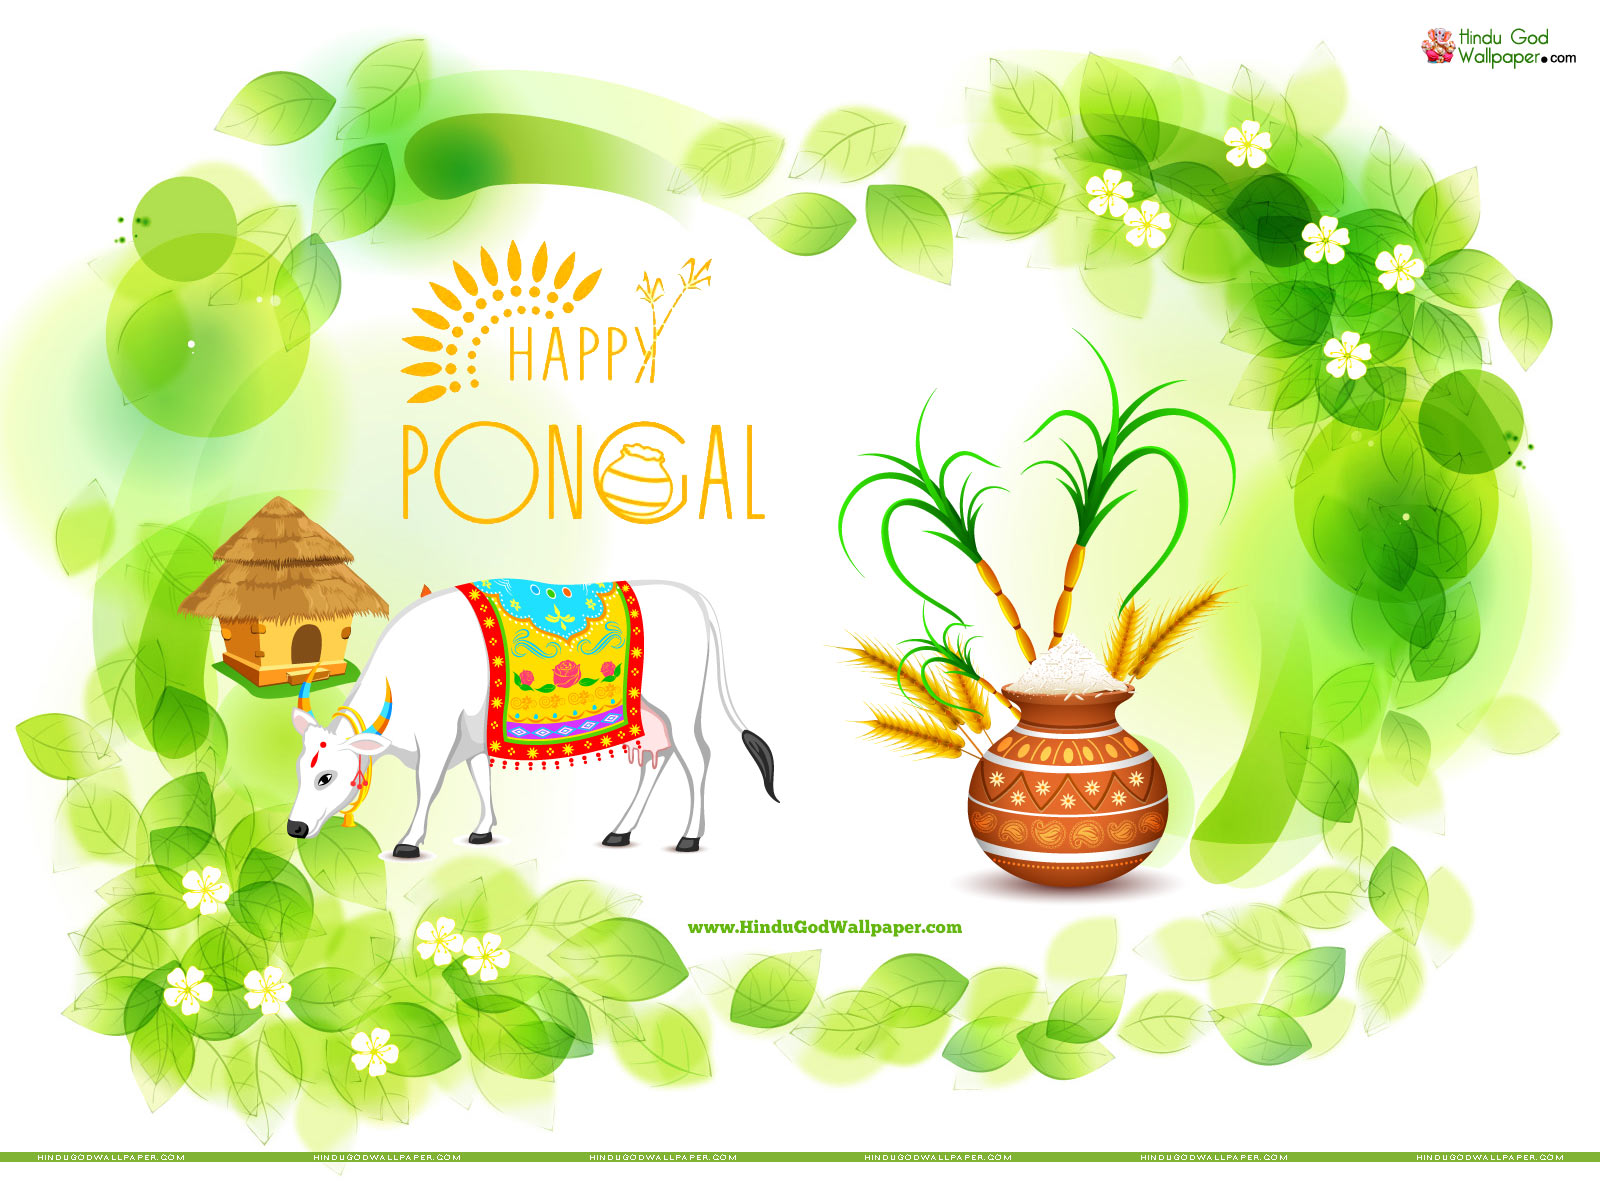 Pongal greetings wallpapers with wishes quotes m4hsunfo Choice Image